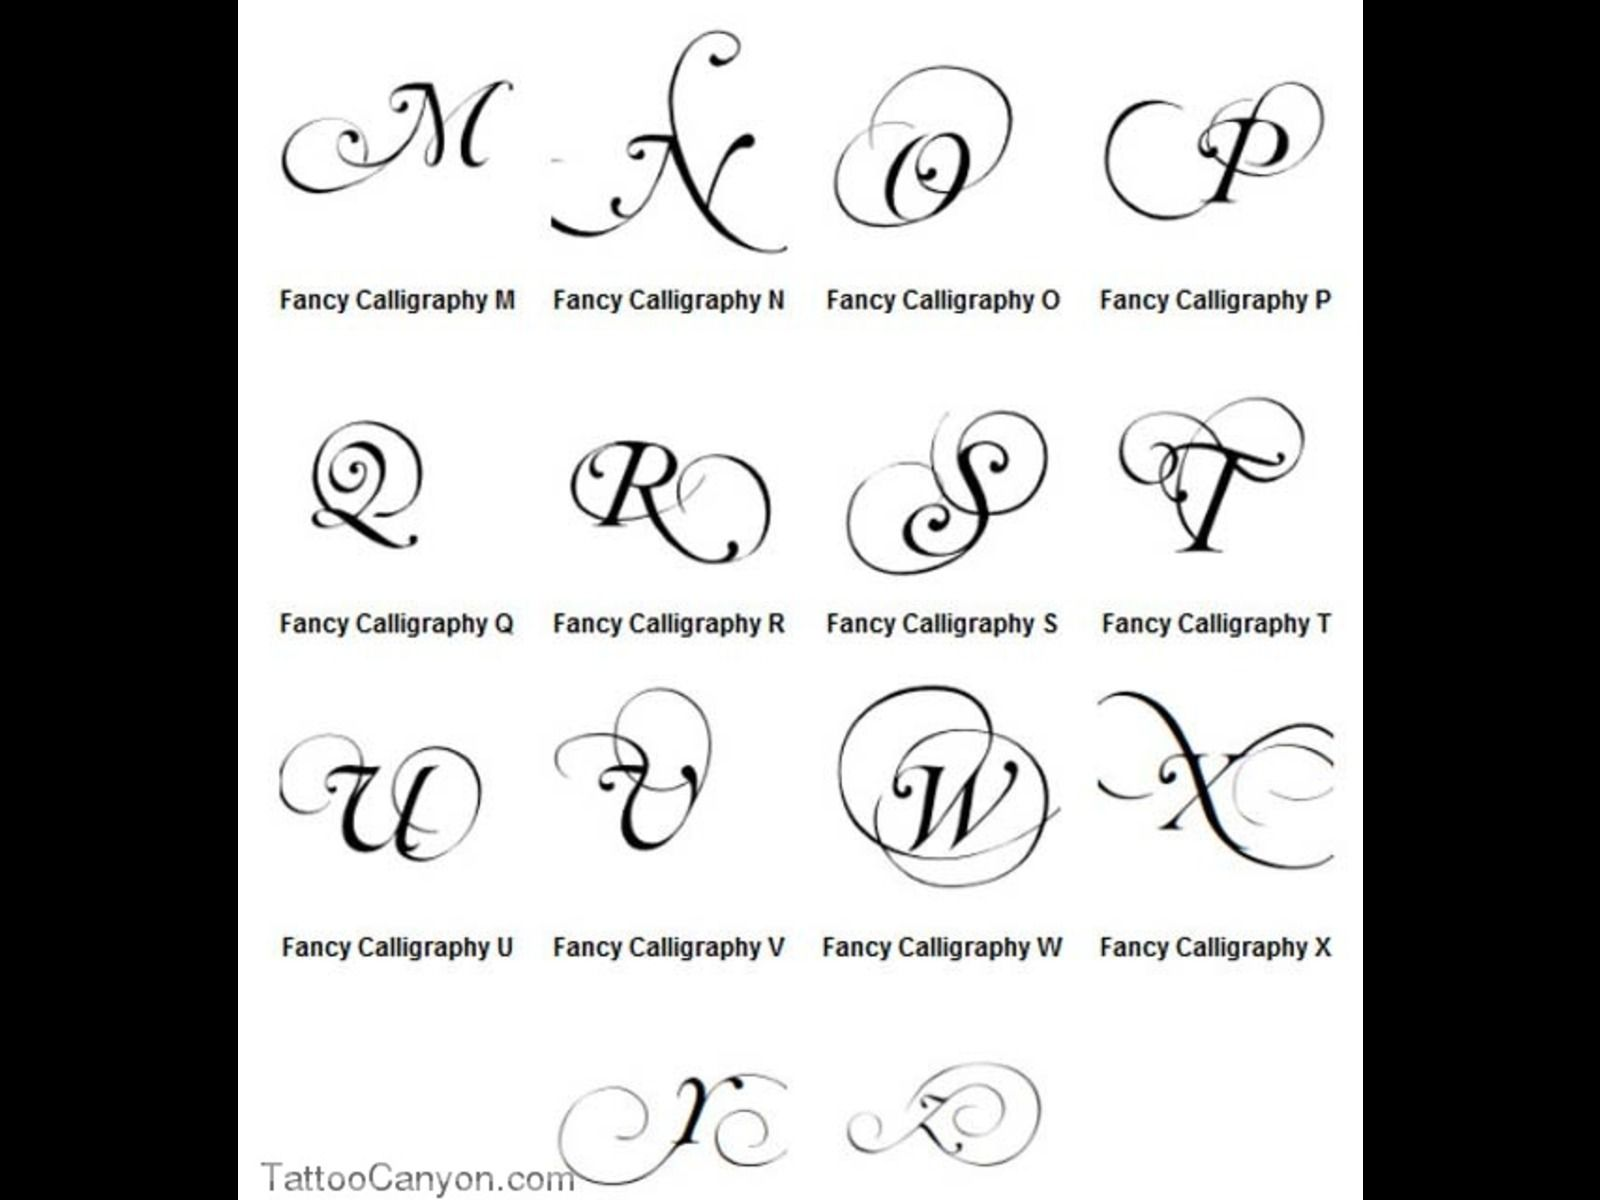 Calligraphy alphabet samples graffiti letters a z fancy Caligraphy i